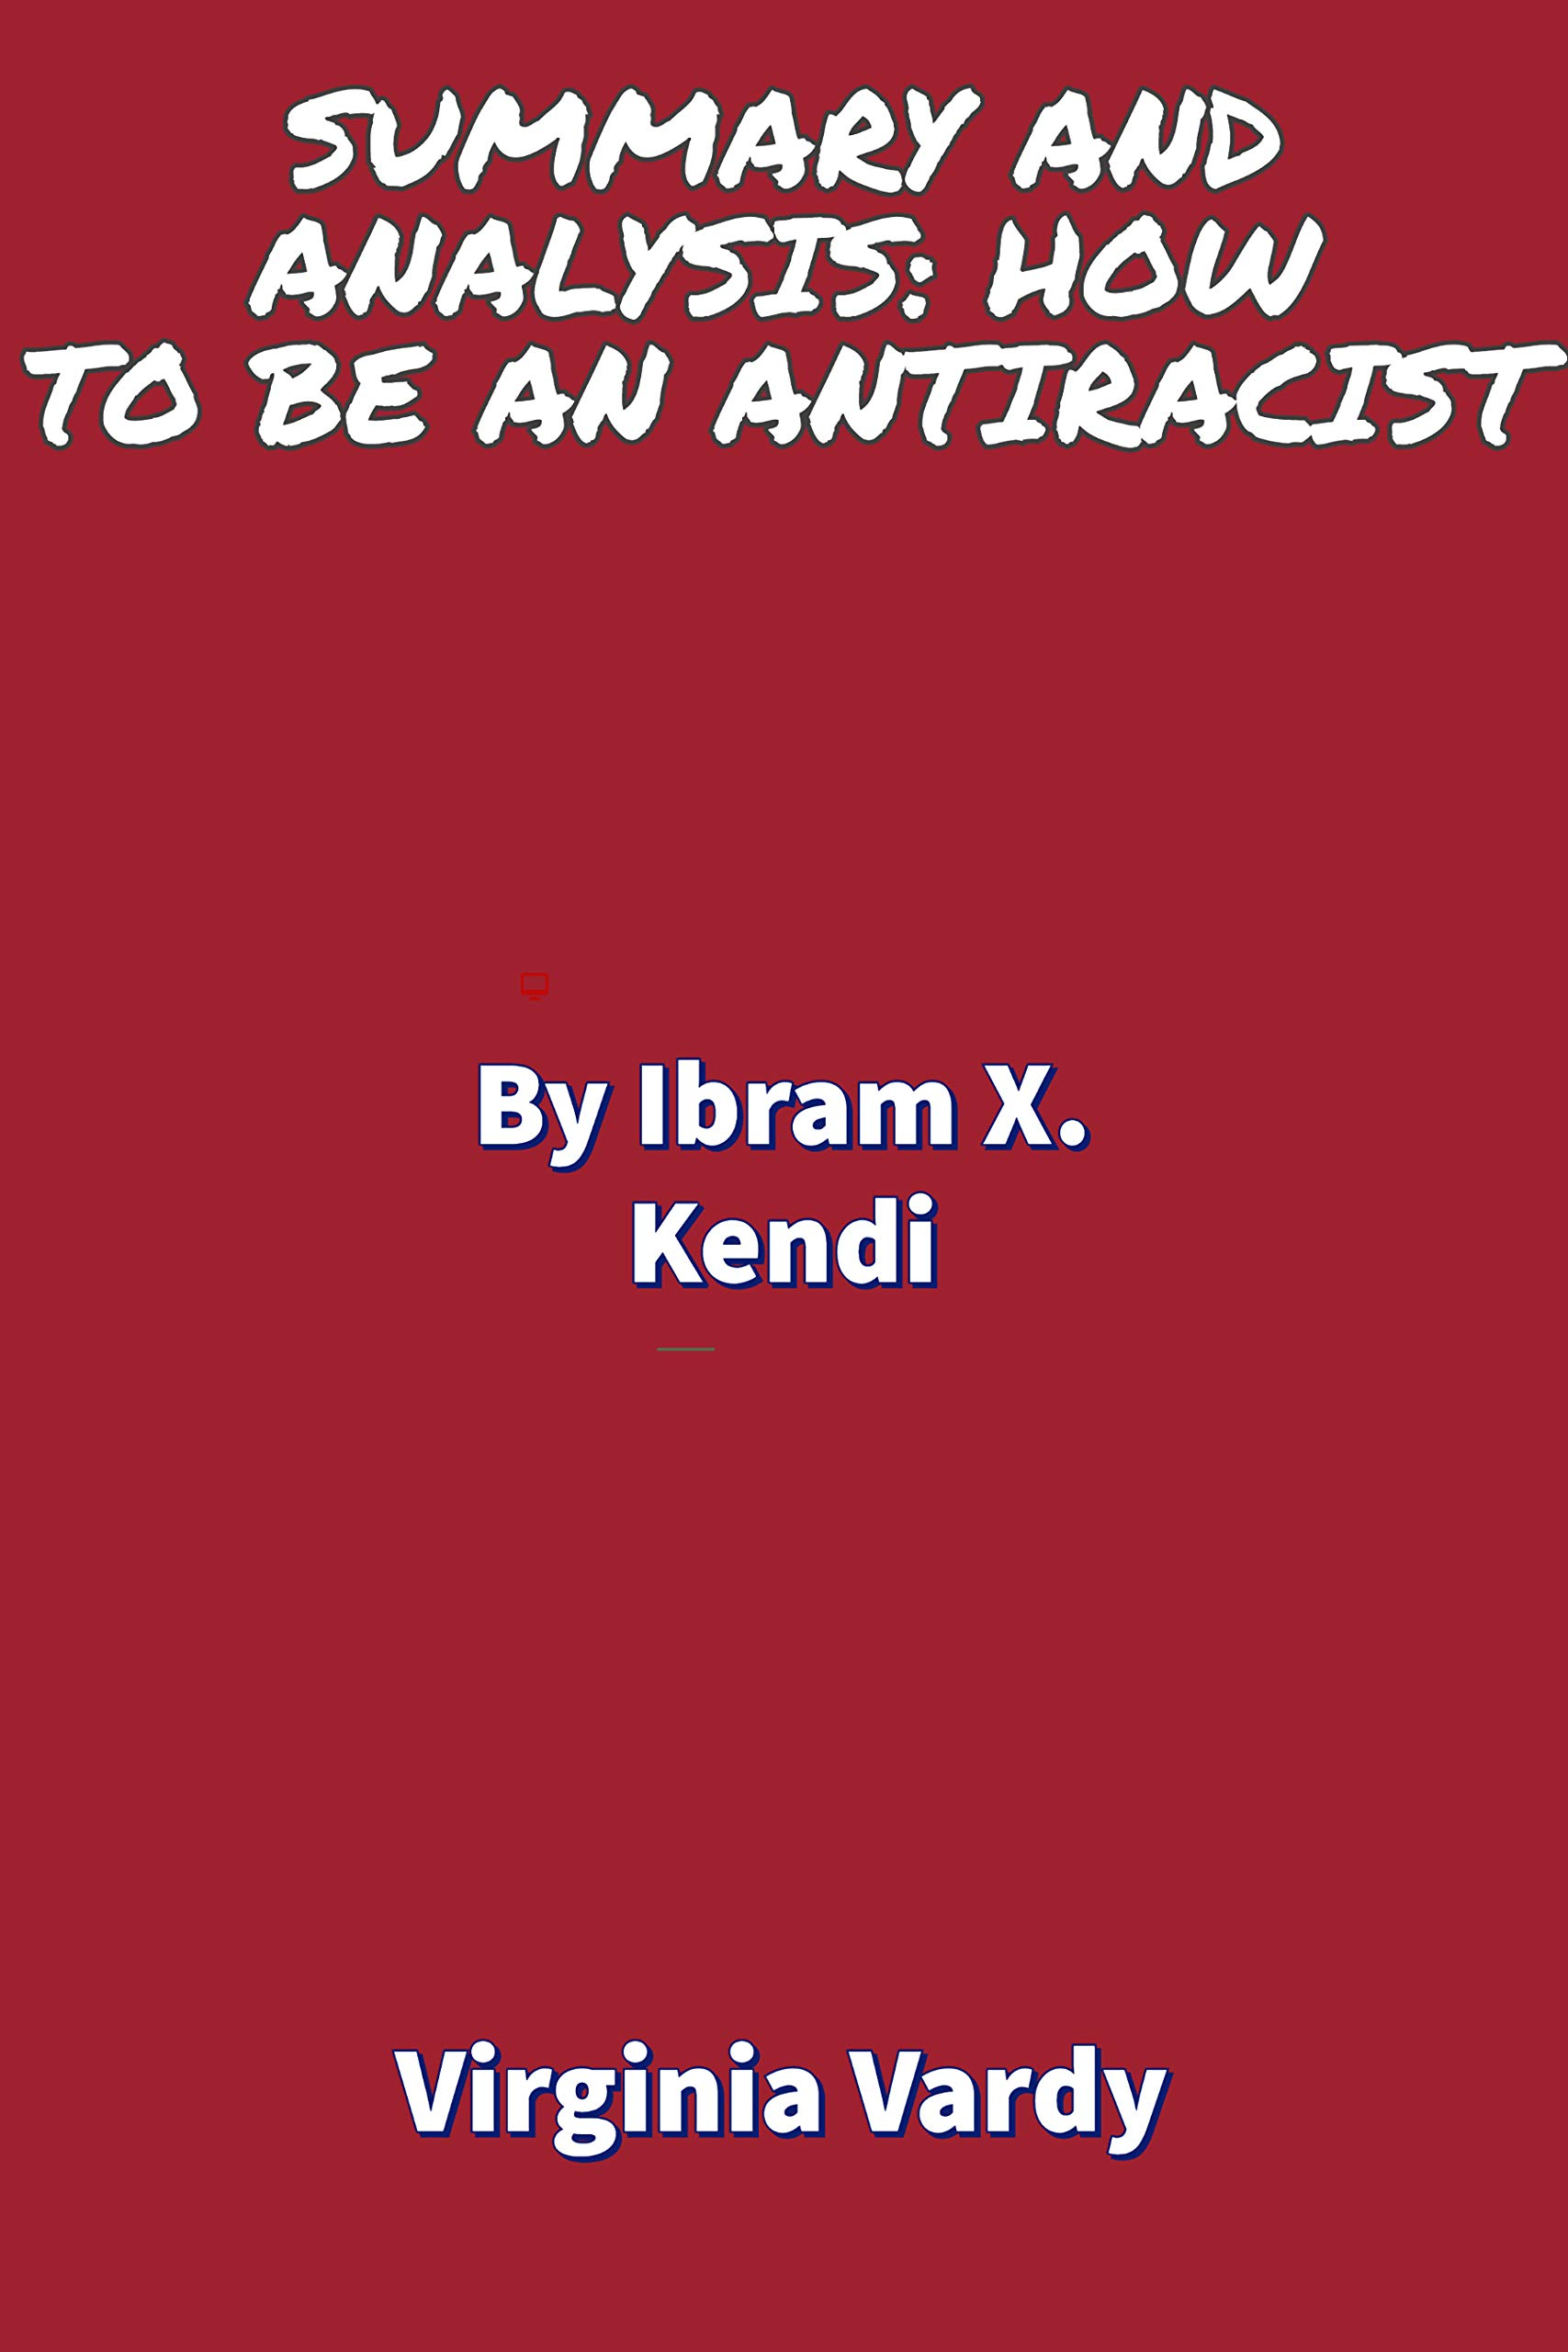 SUMMARY AND ANALYSIS: HOW TO BE AN ANTIRACIST: Takeaways and analysis By Ibram X. Kendi Virginia Vardy